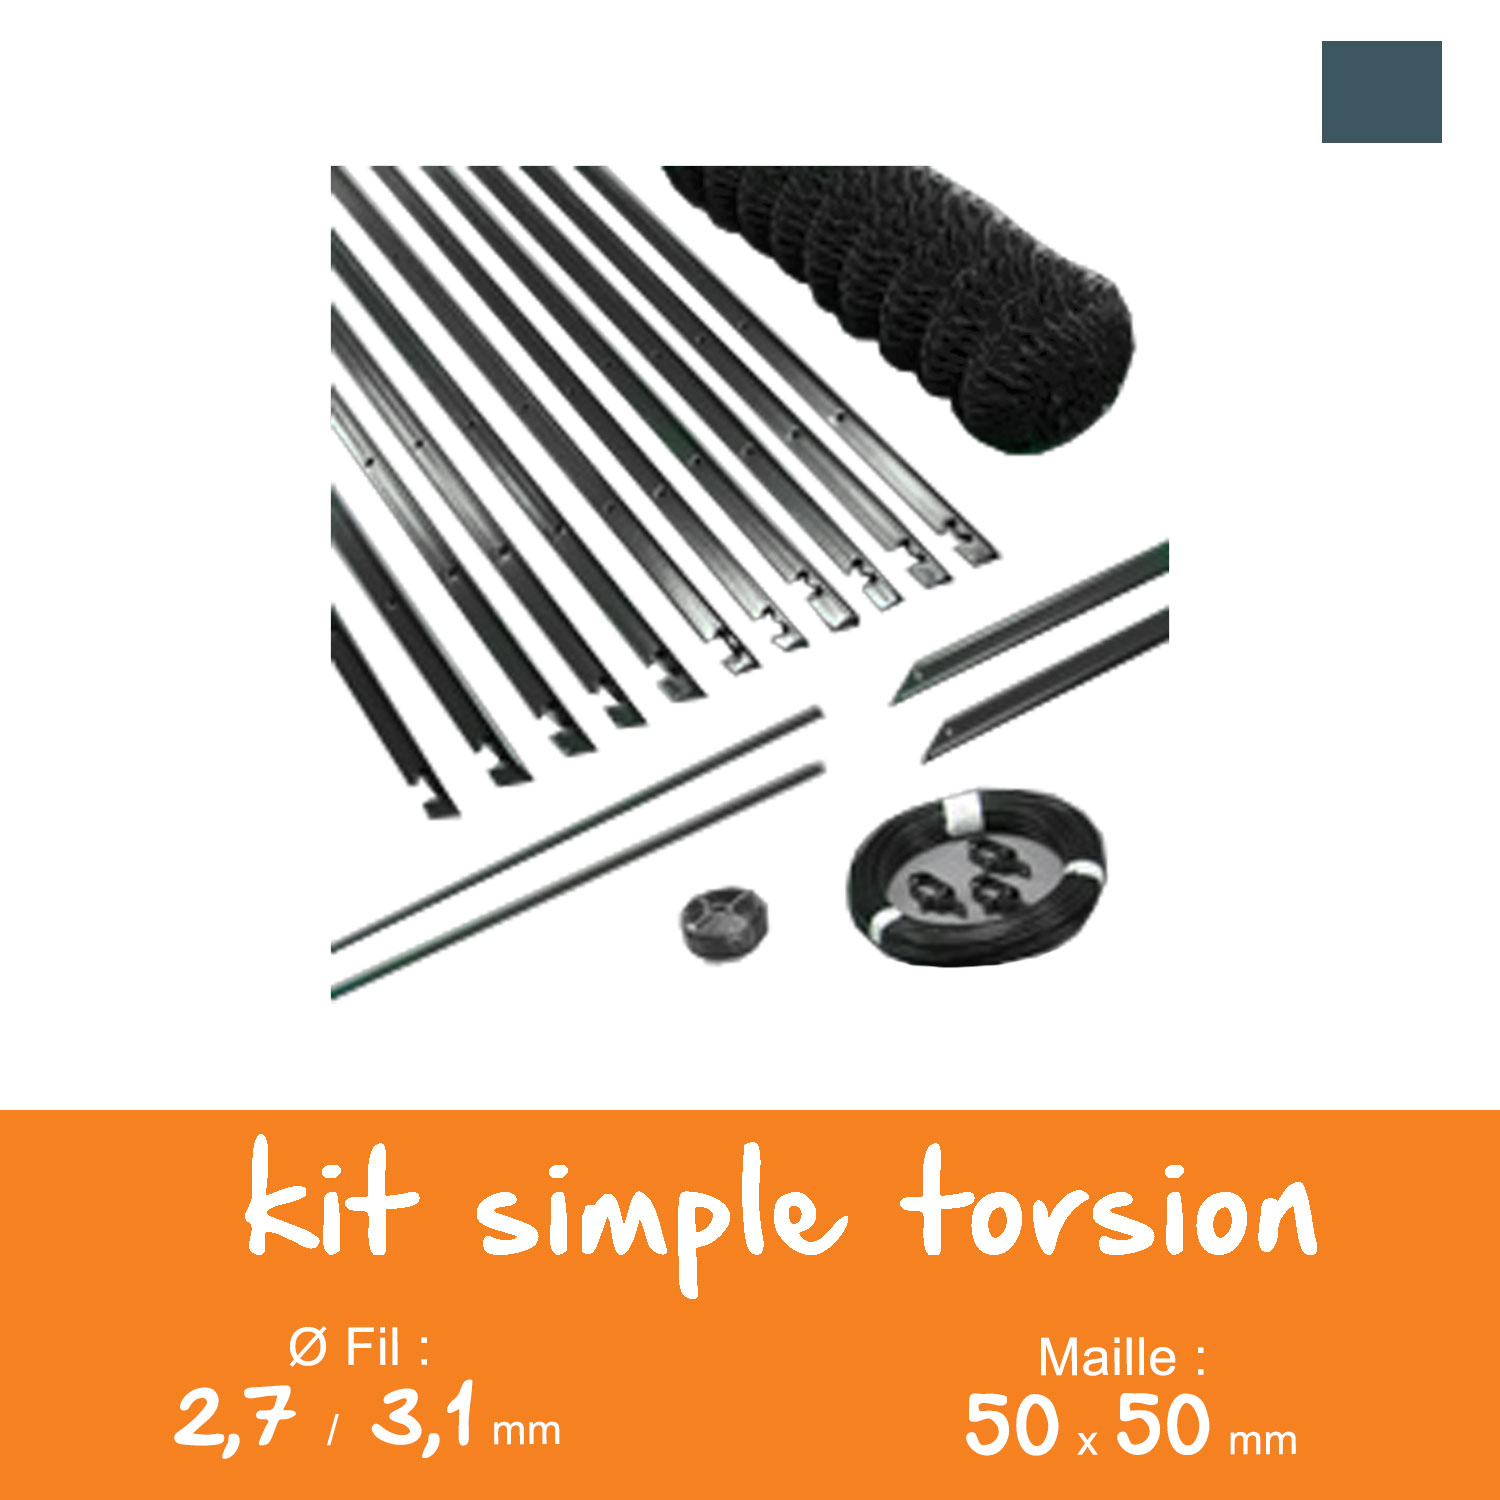 Kit grillage simple torsion 50 x 50 mm - Ø 2,7 / 3,1 mm - Lg. 25 m Gris Anthracite